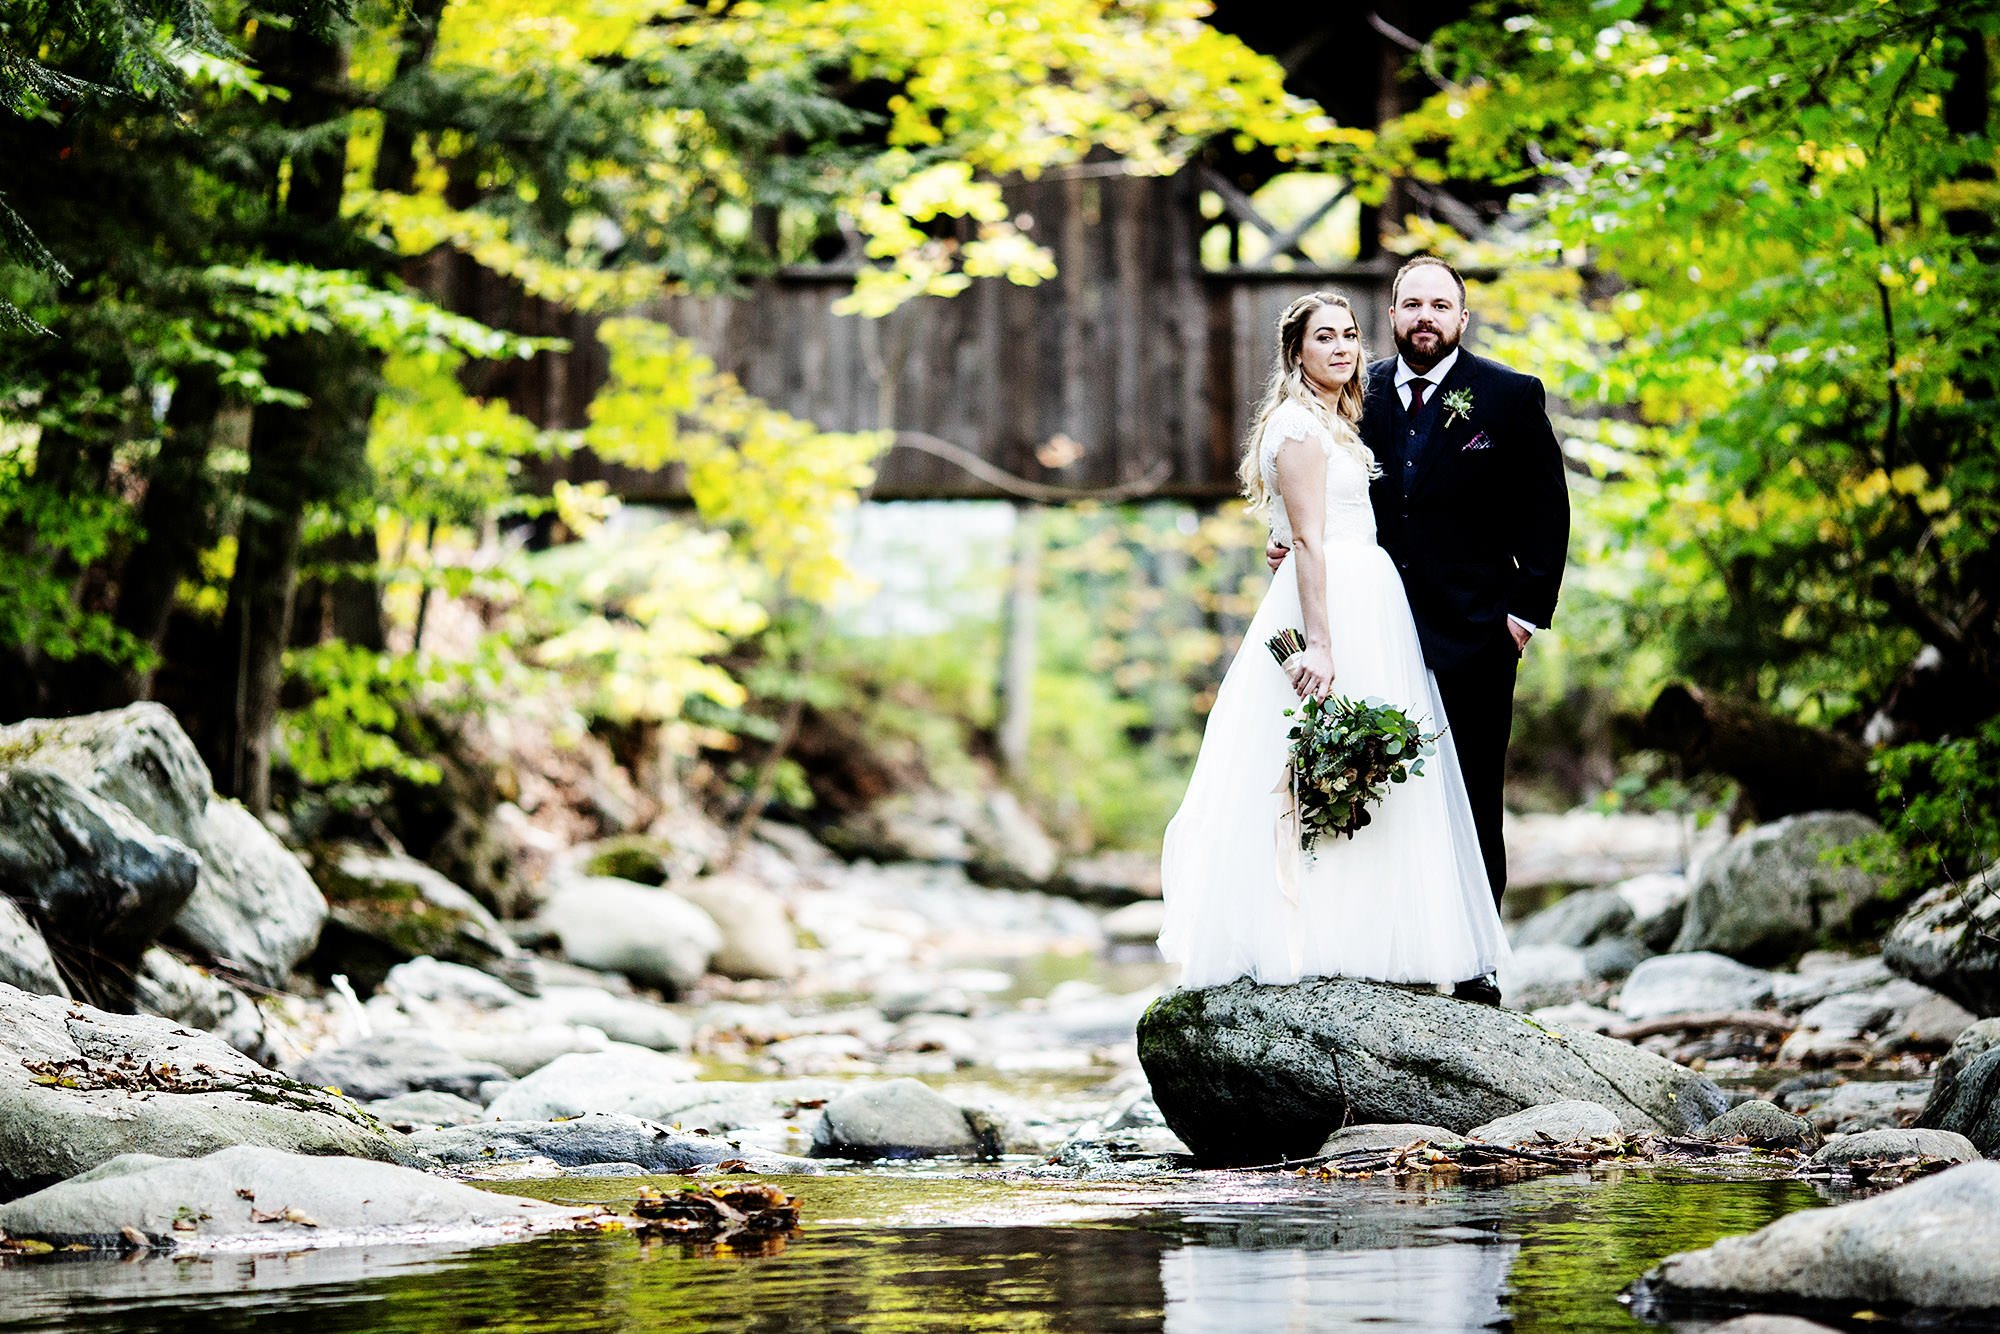 The bride and groom pose for a portrait while standing on a rock in Mill Brook.